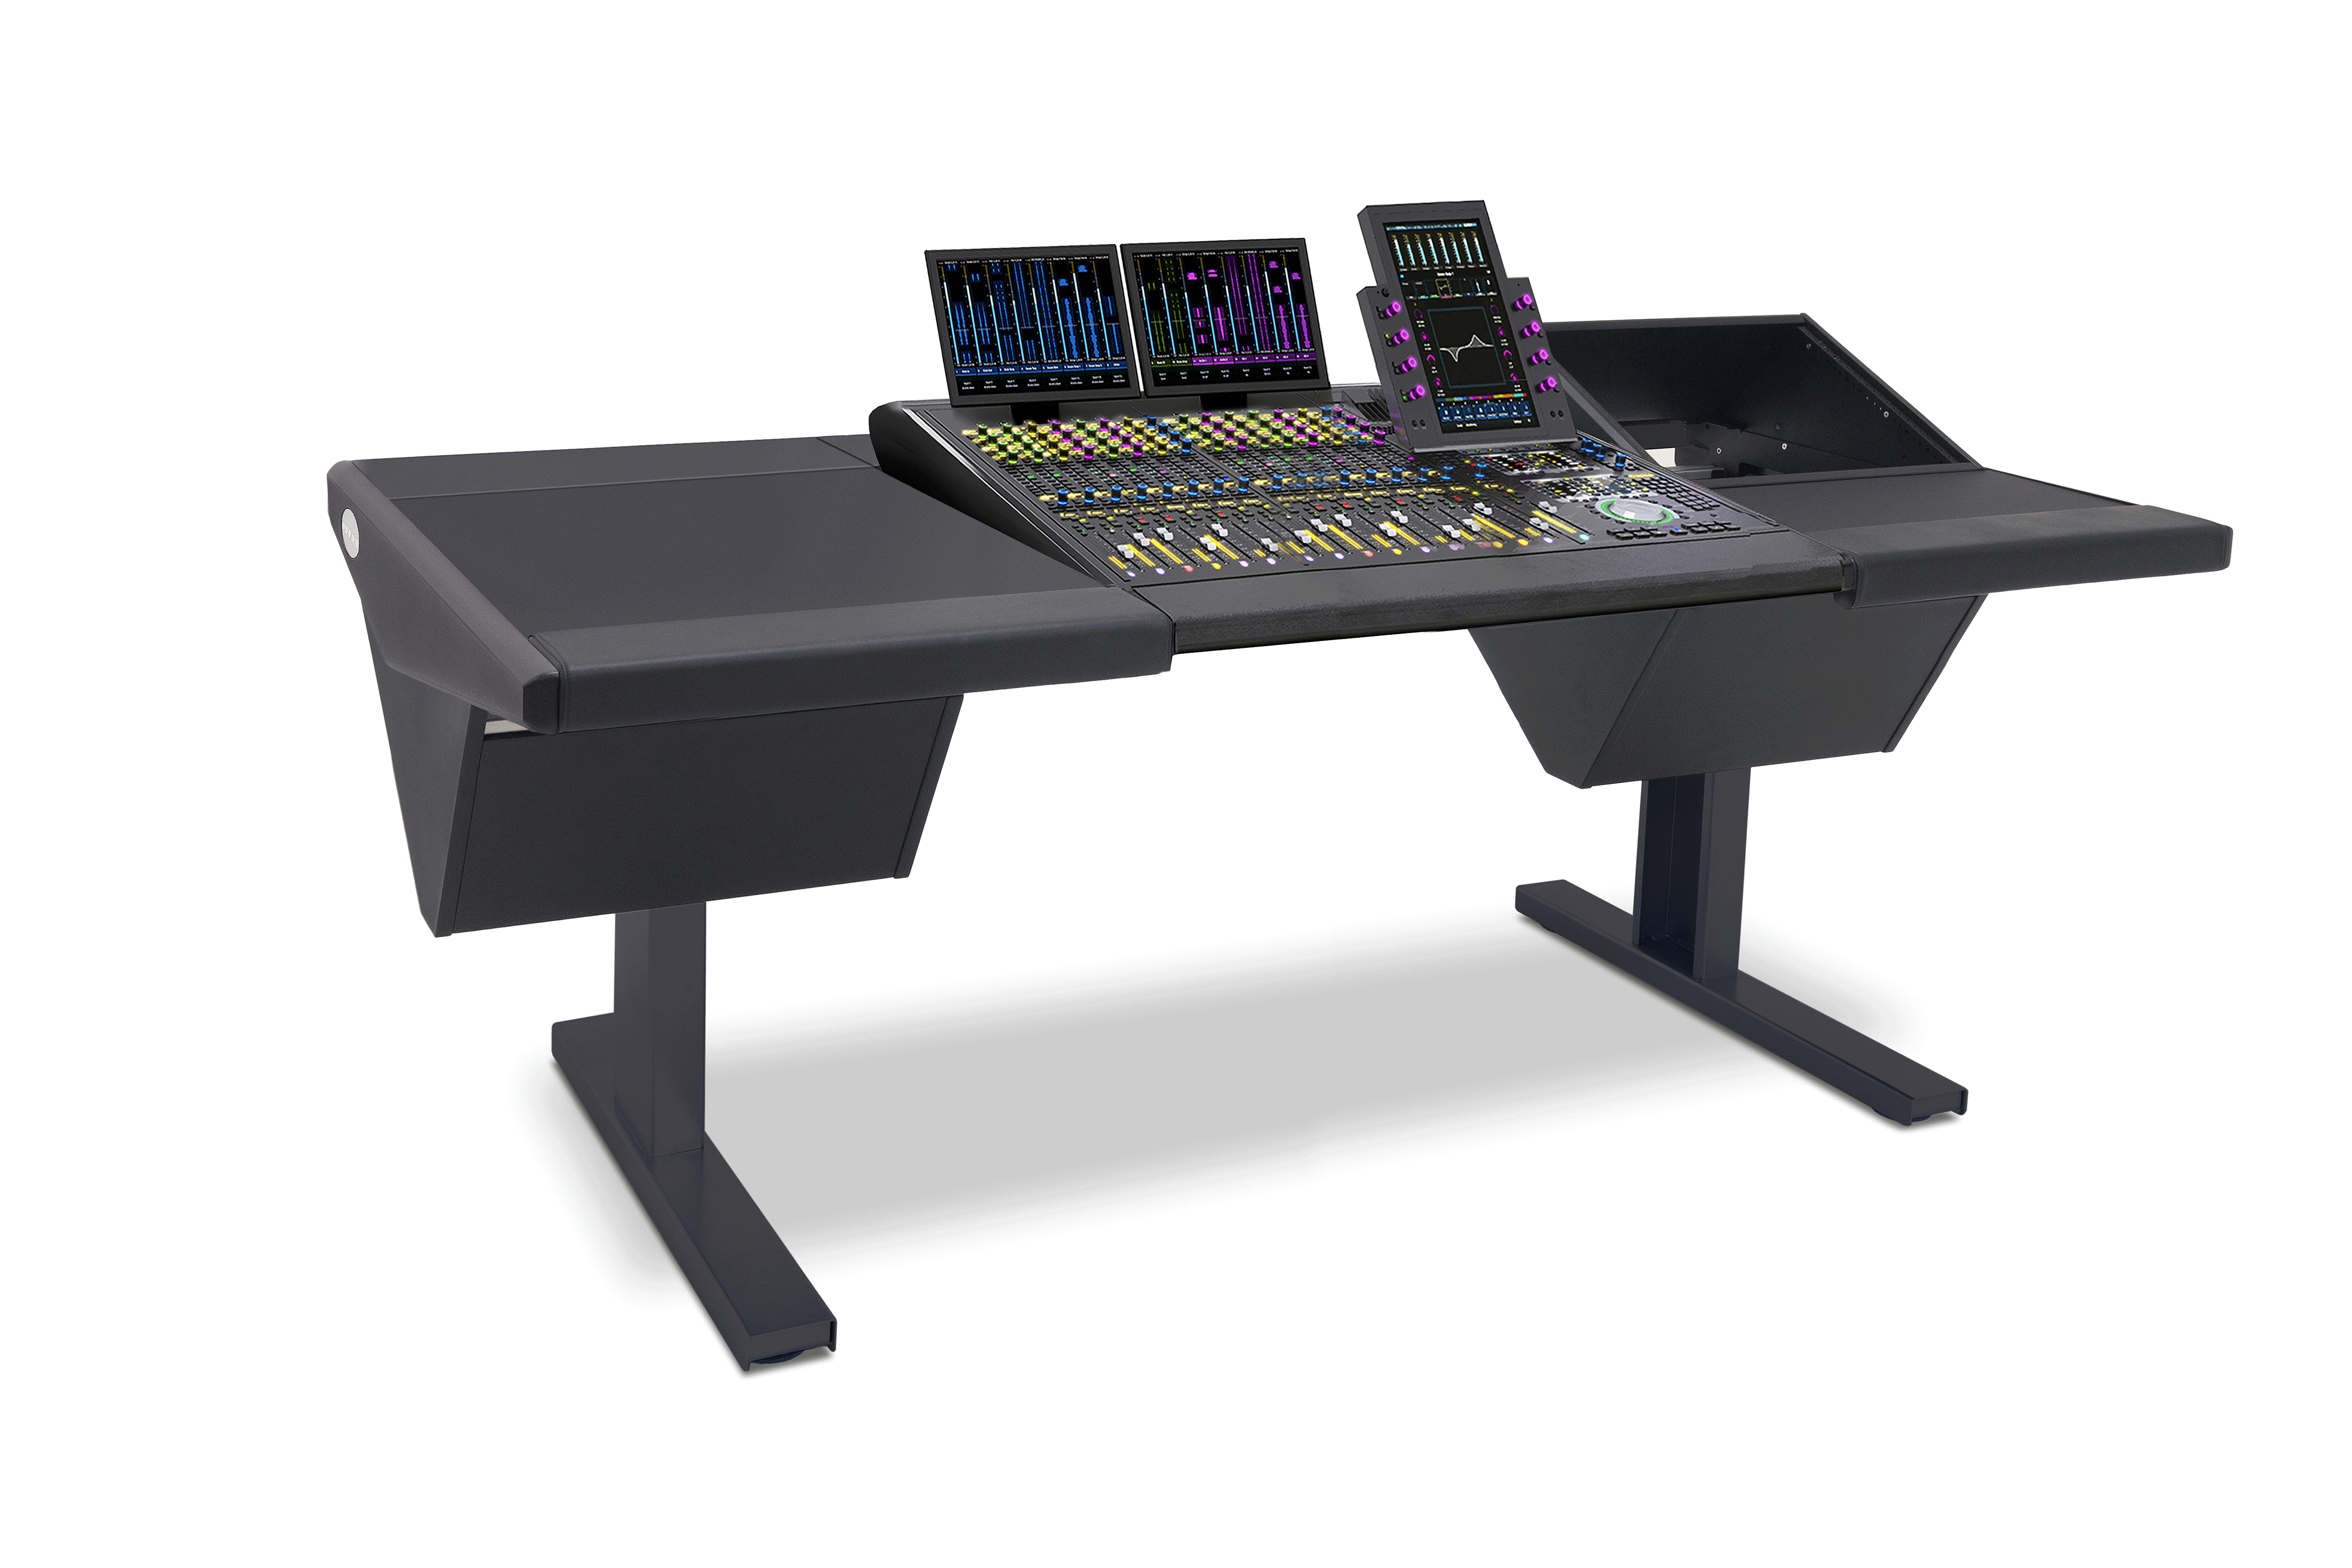 16 Fader System with Desk (L) and Rack (R)